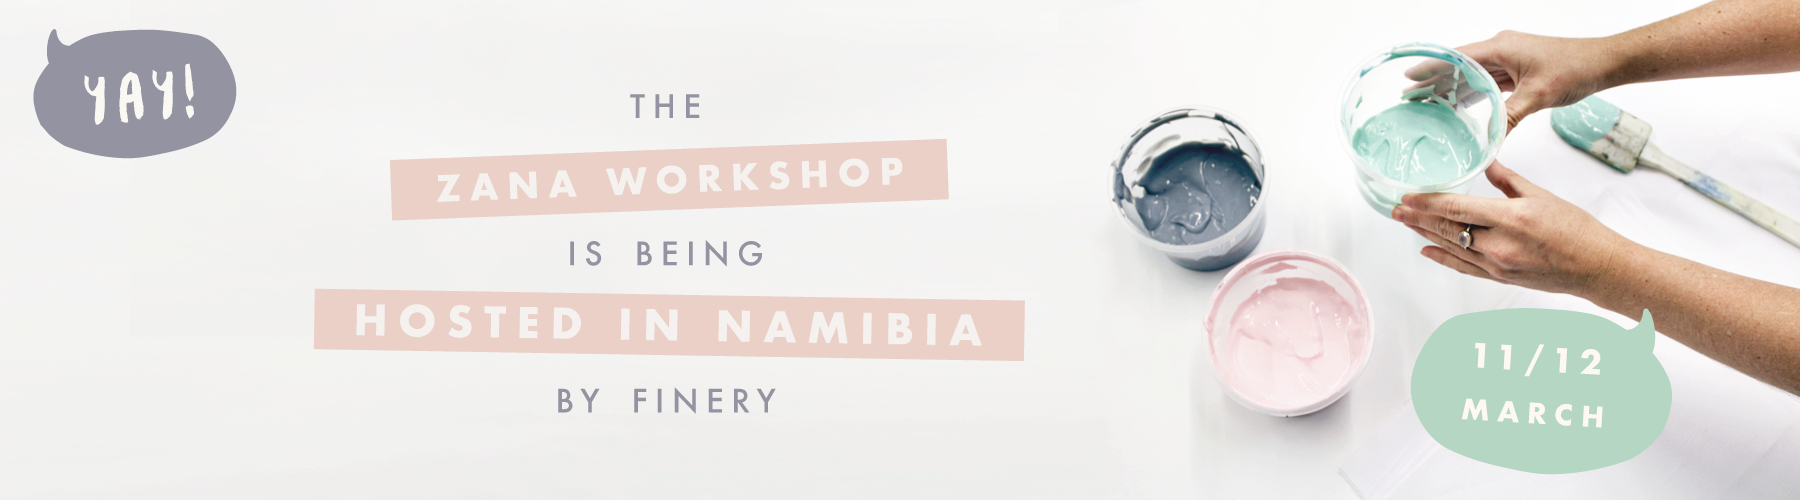 NamibiaWorkshop_Webslider_complete